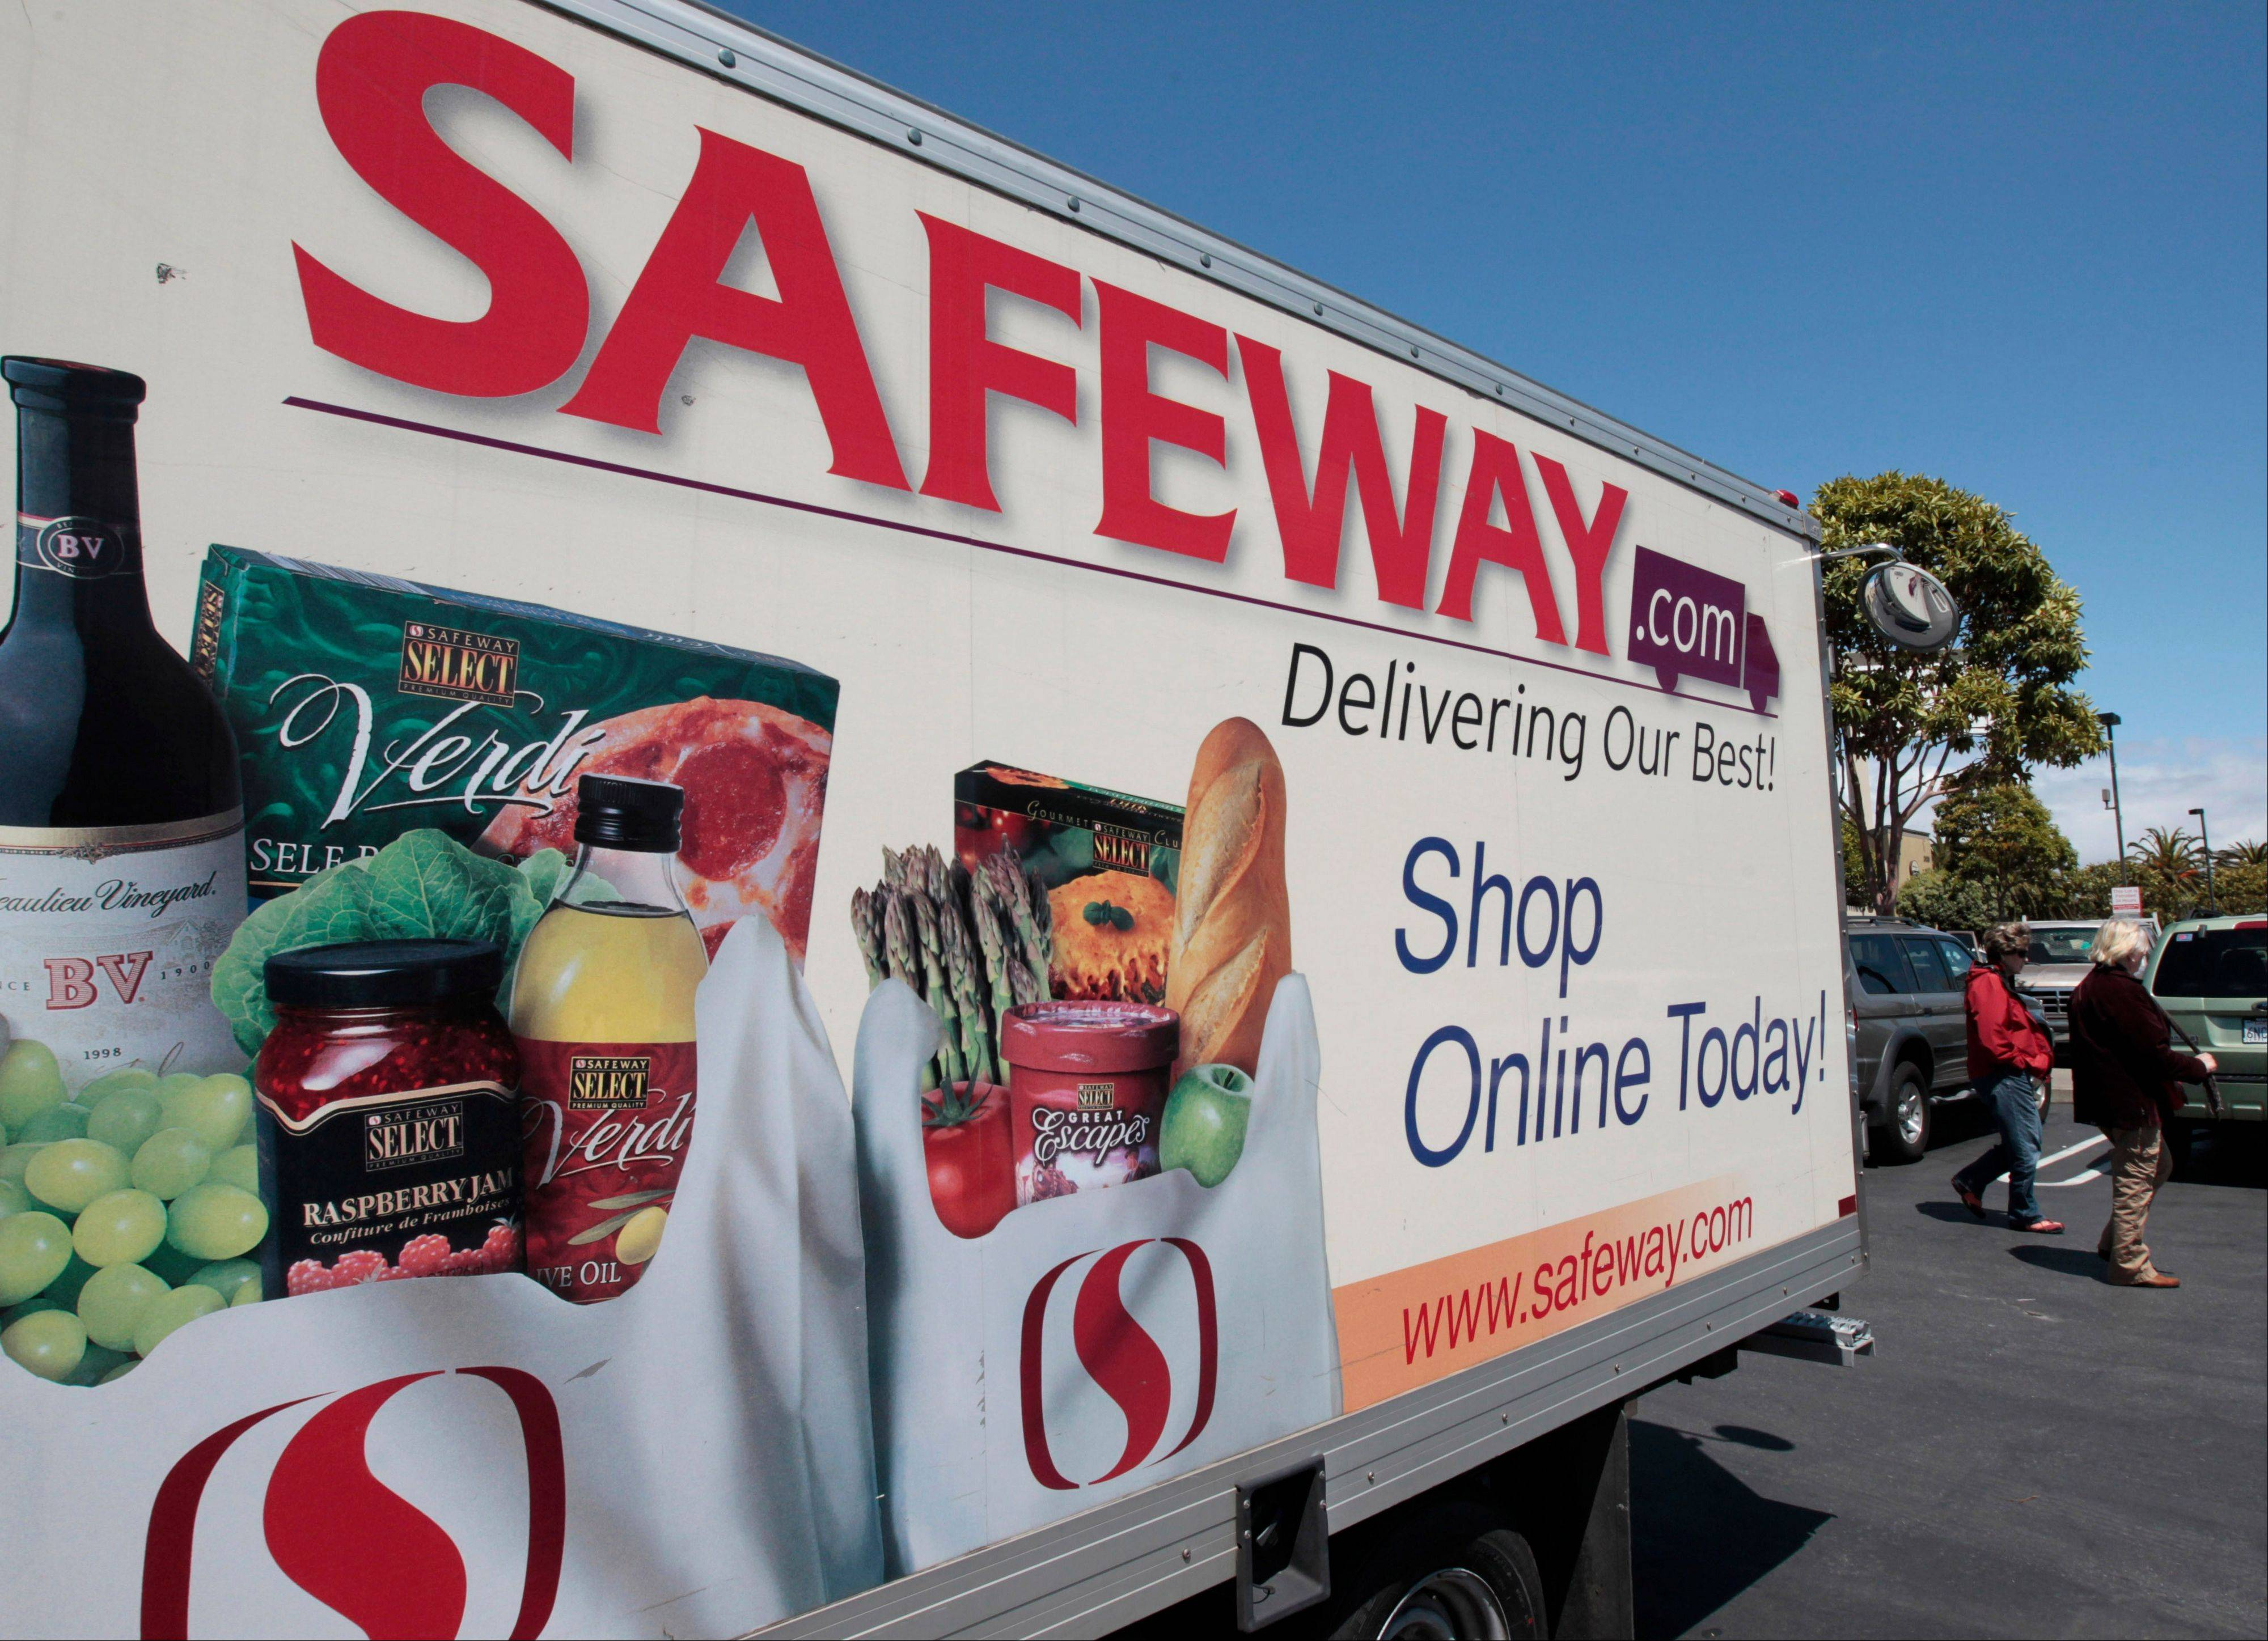 In this Thursday, April 26, 2012, file photo, a Safeway online shopping advertisement is shown at a Safeway store in San Francisco. Grocery store operator Safeway said Thursday, Feb. 21, 2013, its customer loyalty program helped its fourth-quarter net income jump 13 percent in the fourth quarter, far surpassing expectations.